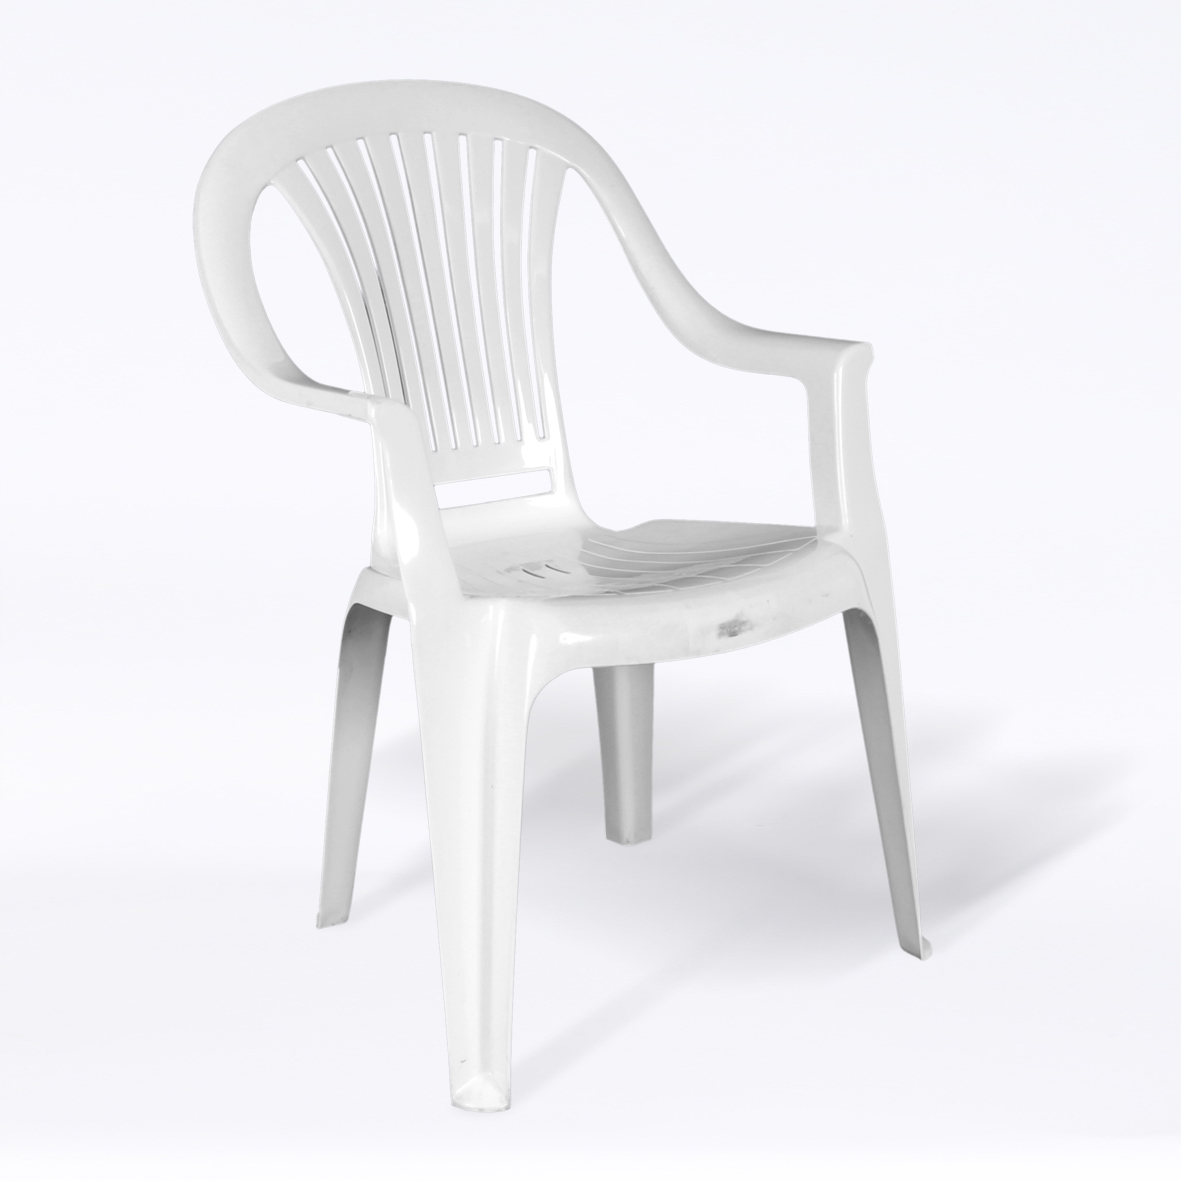 Awesome Back and Seat also Handle Arm  For Good Plastic Chairs